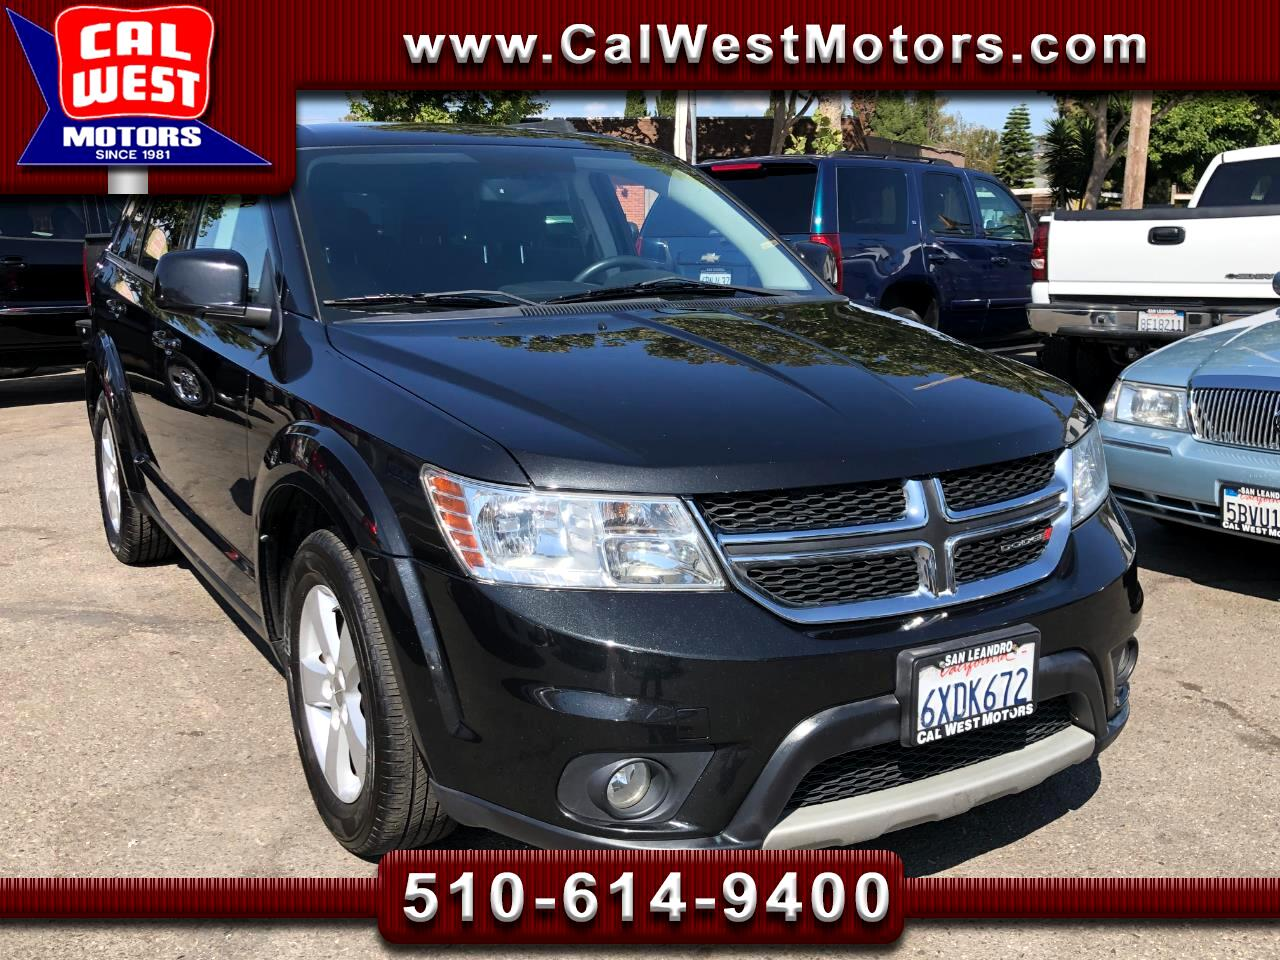 2012 Dodge Journey SXT SUV 3Rows 7Passngr Blu2th XM Aux ExprtlyMaintn